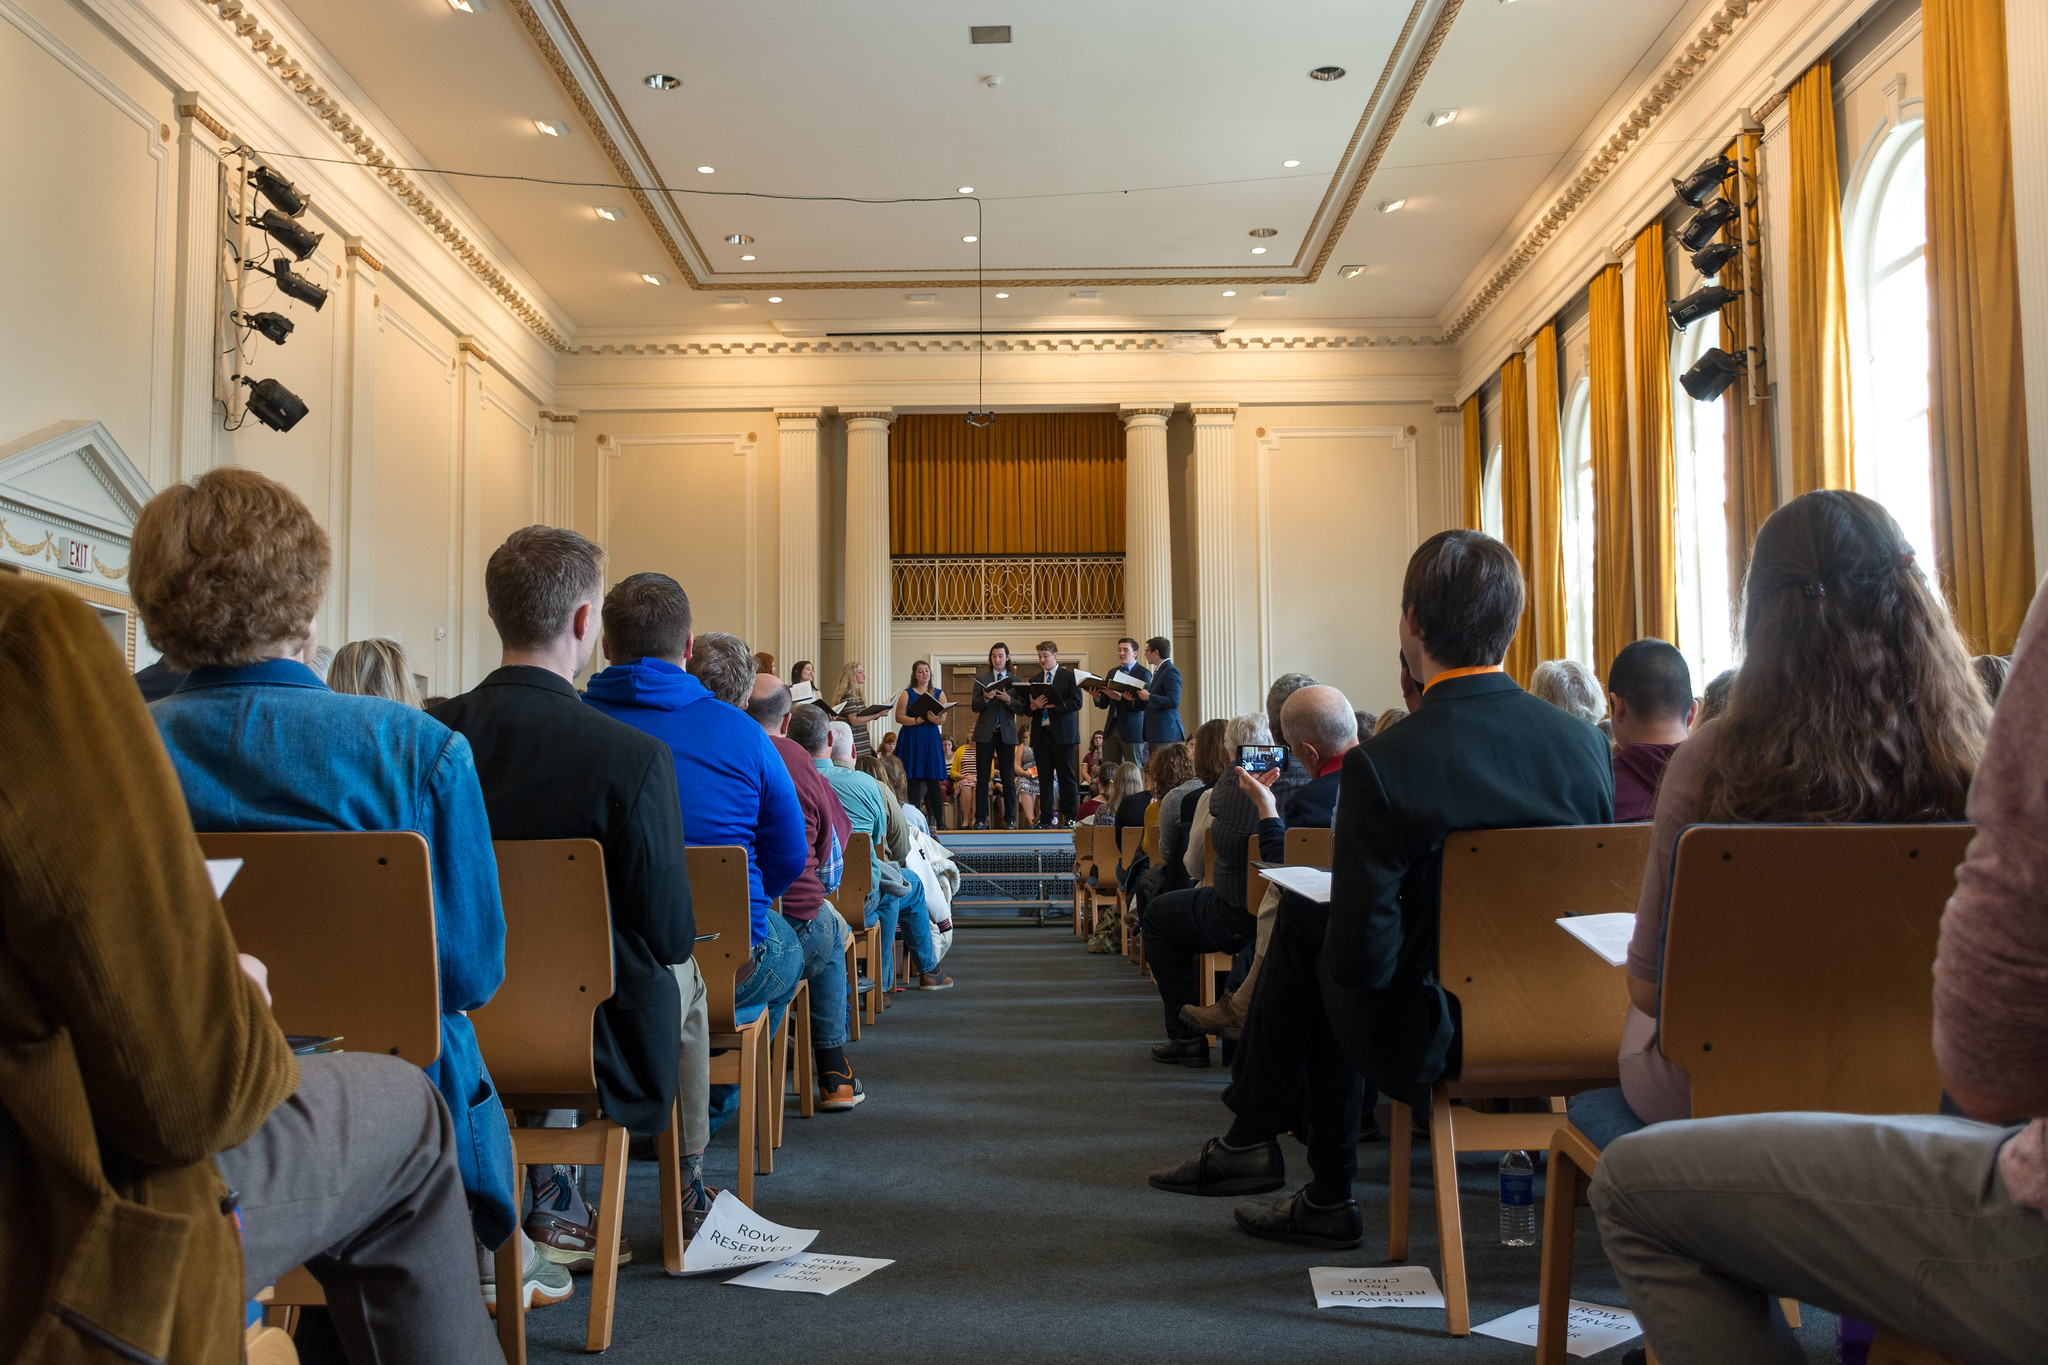 Paul Recital Hall may not be packed, but the Conservatory's Now Hear This tradition lives on (Photo courtesy of Gettysburg College)